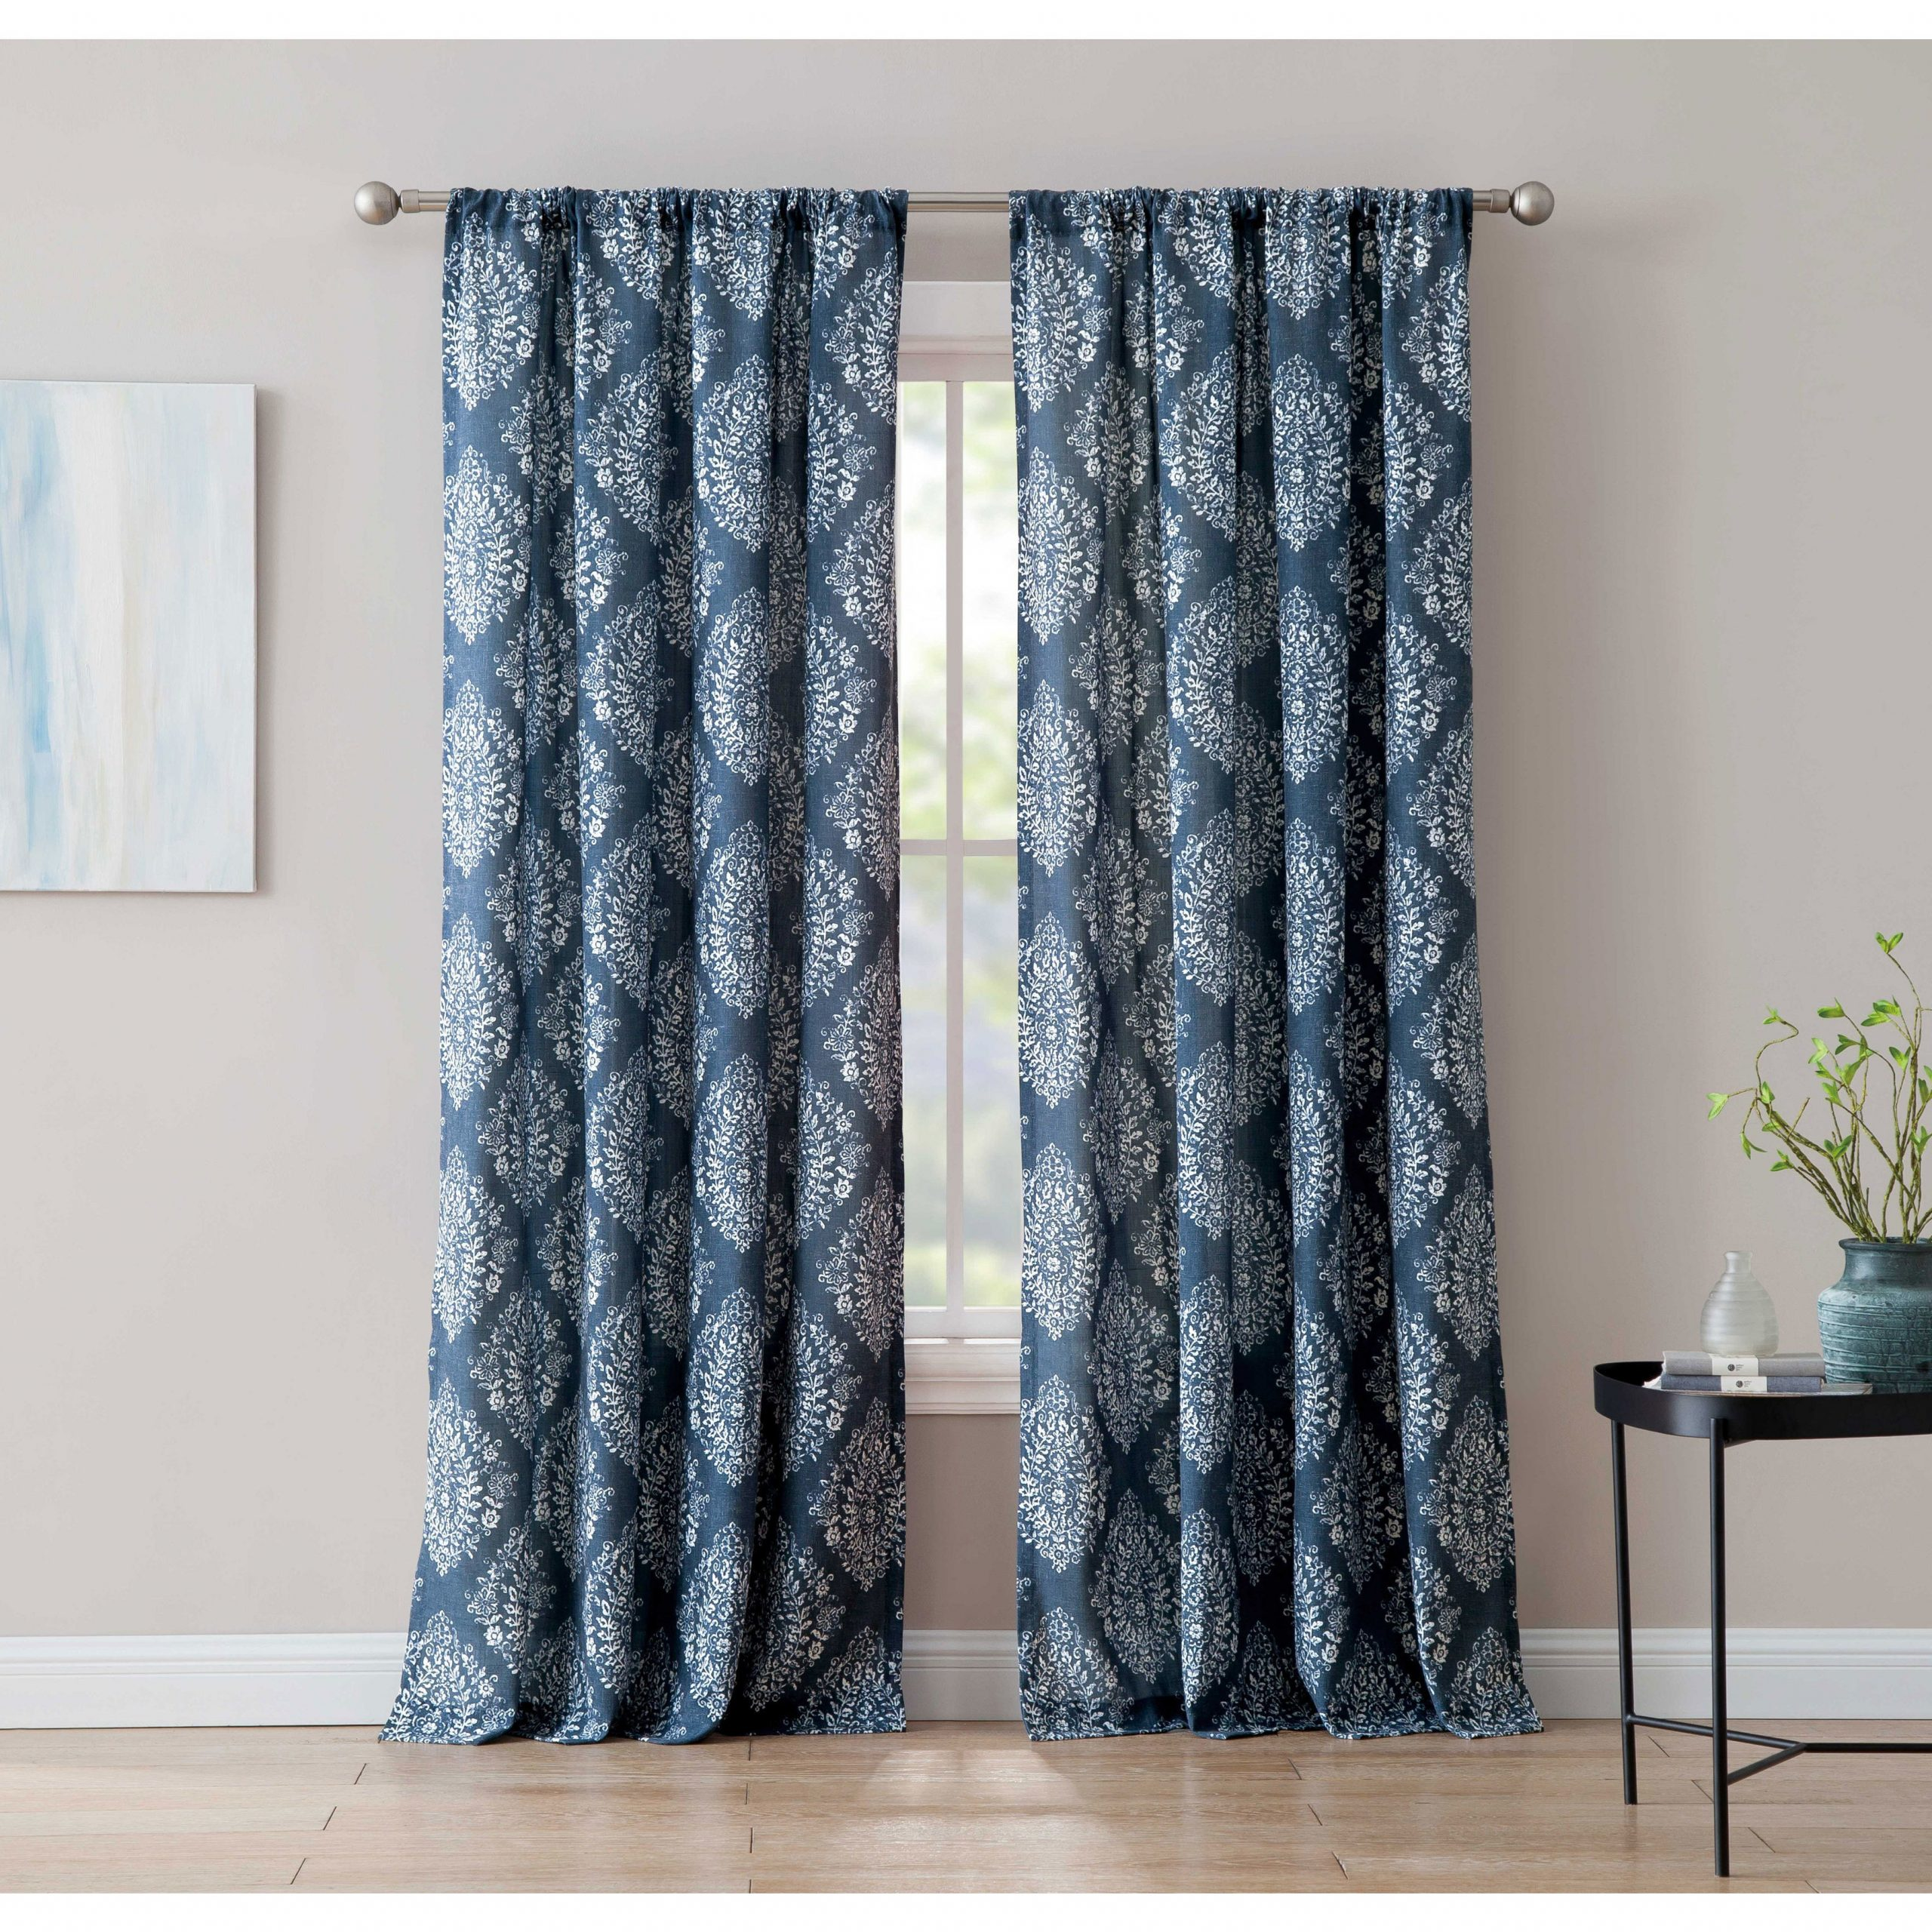 Alma 84 Inch Window Curtain With Rod Pocket Single Panel, Inspired Surroundings1888 Mills In Recent Willow Rod Pocket Window Curtain Panels (View 16 of 20)